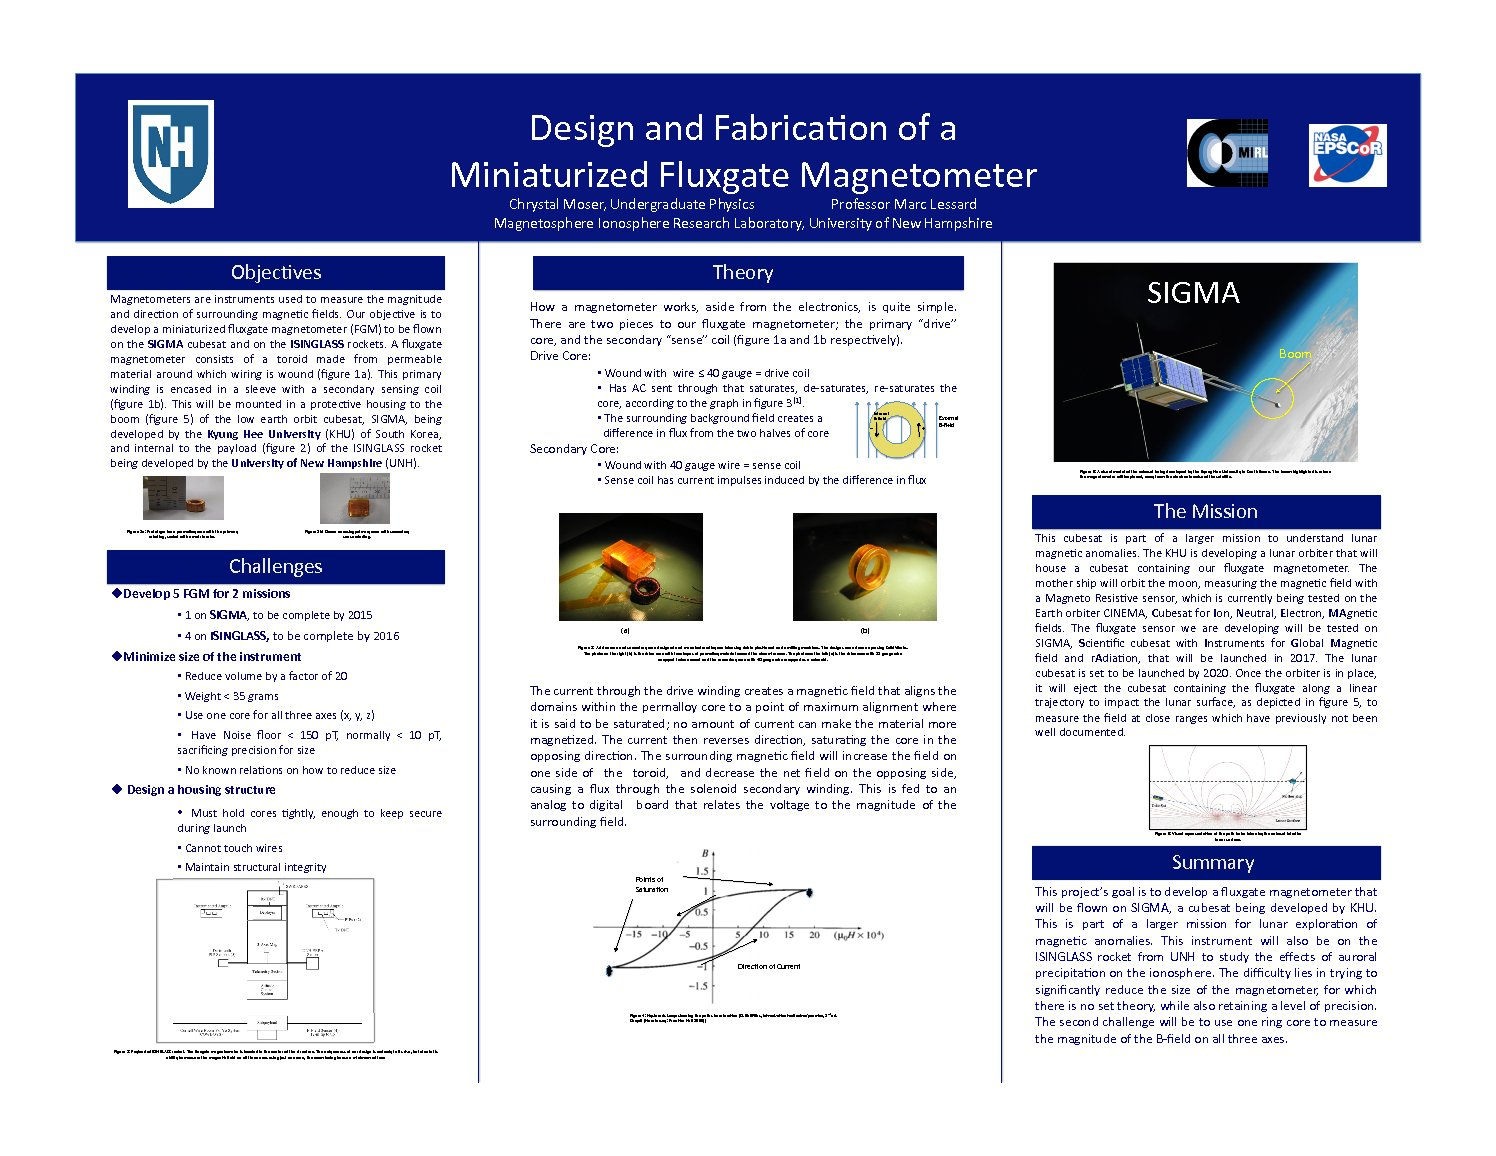 Design And Fabrication Of A Miniaturized Fluxgate Magnetometer by csp42